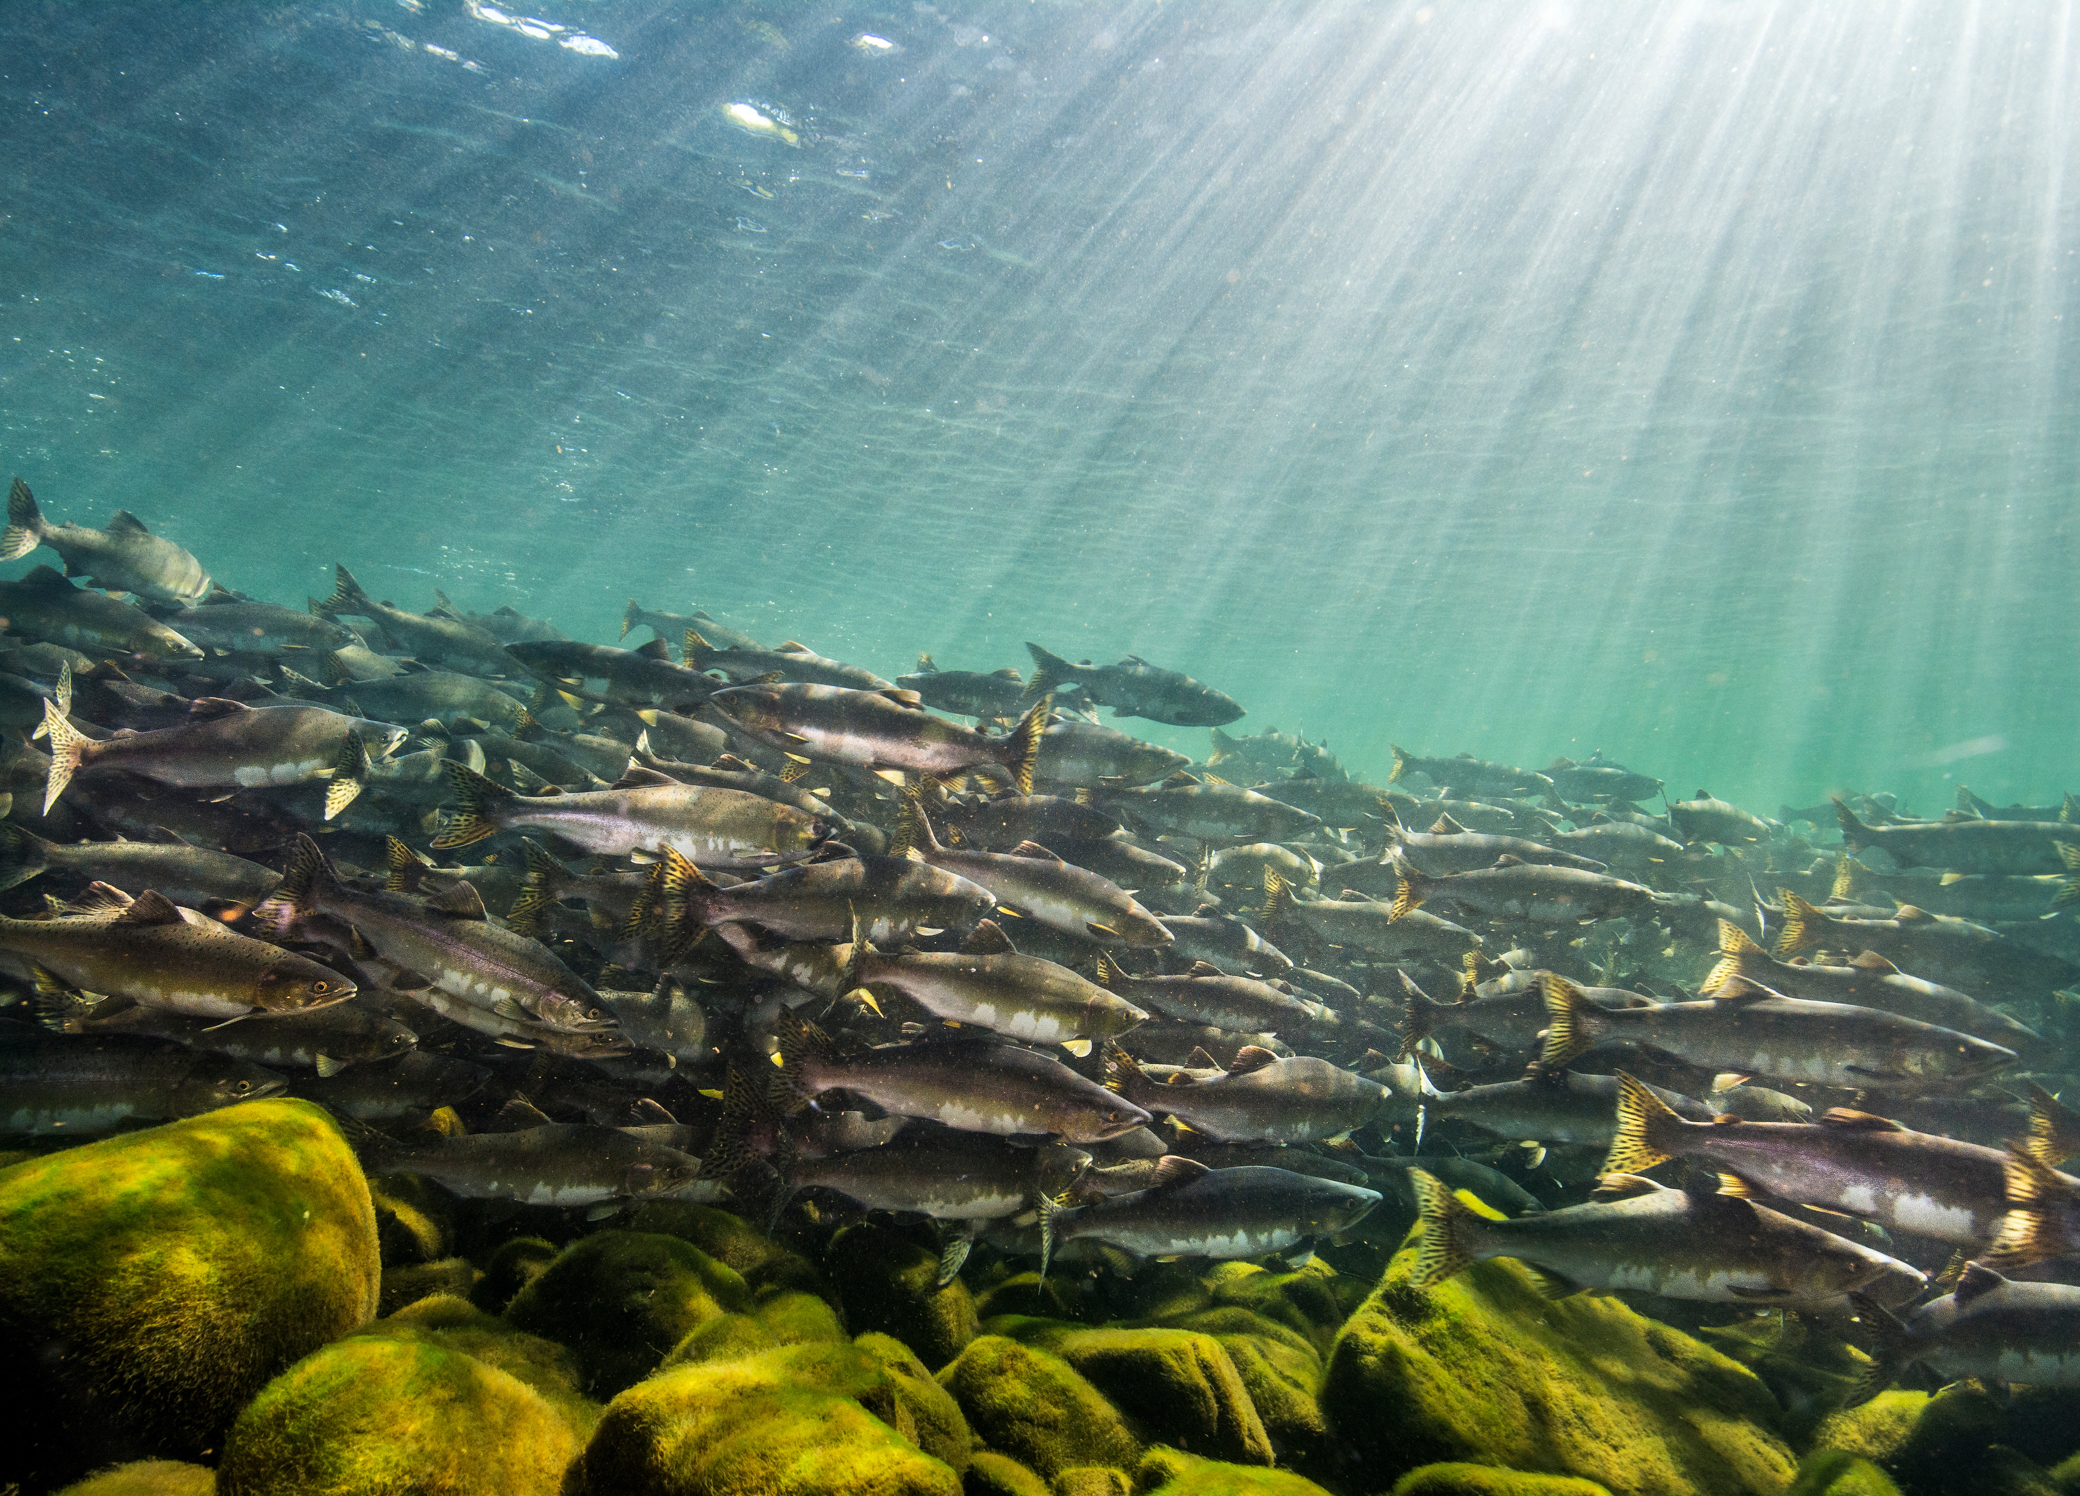 Adult pink salmon make their way up British Columbia's Campbell River. Photo by April Bencze